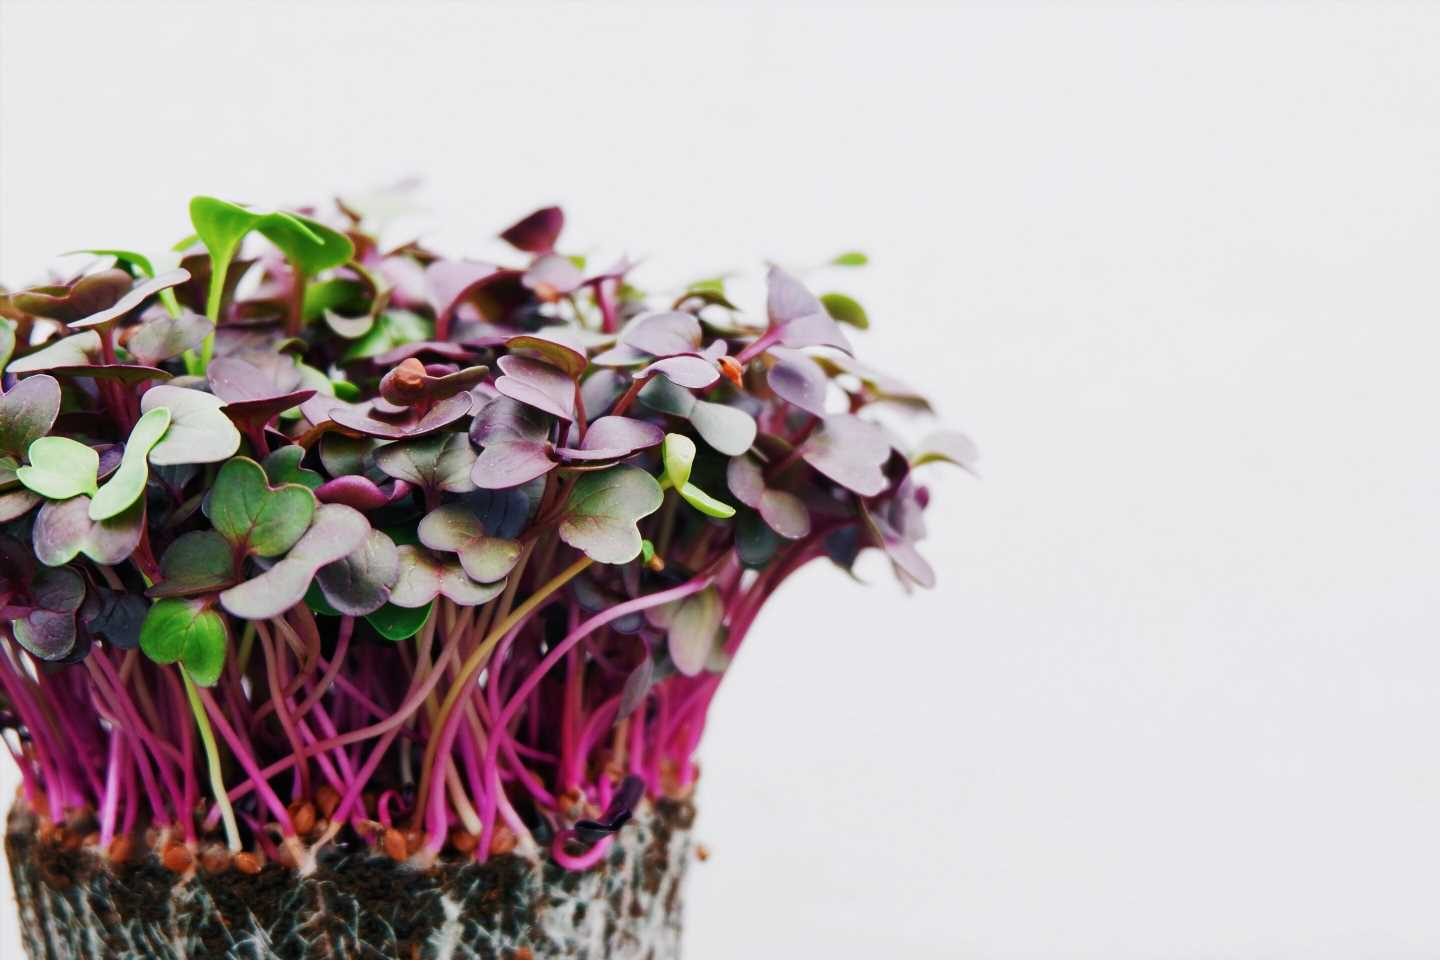 Trendy microgreens offer flavor you can grow at home